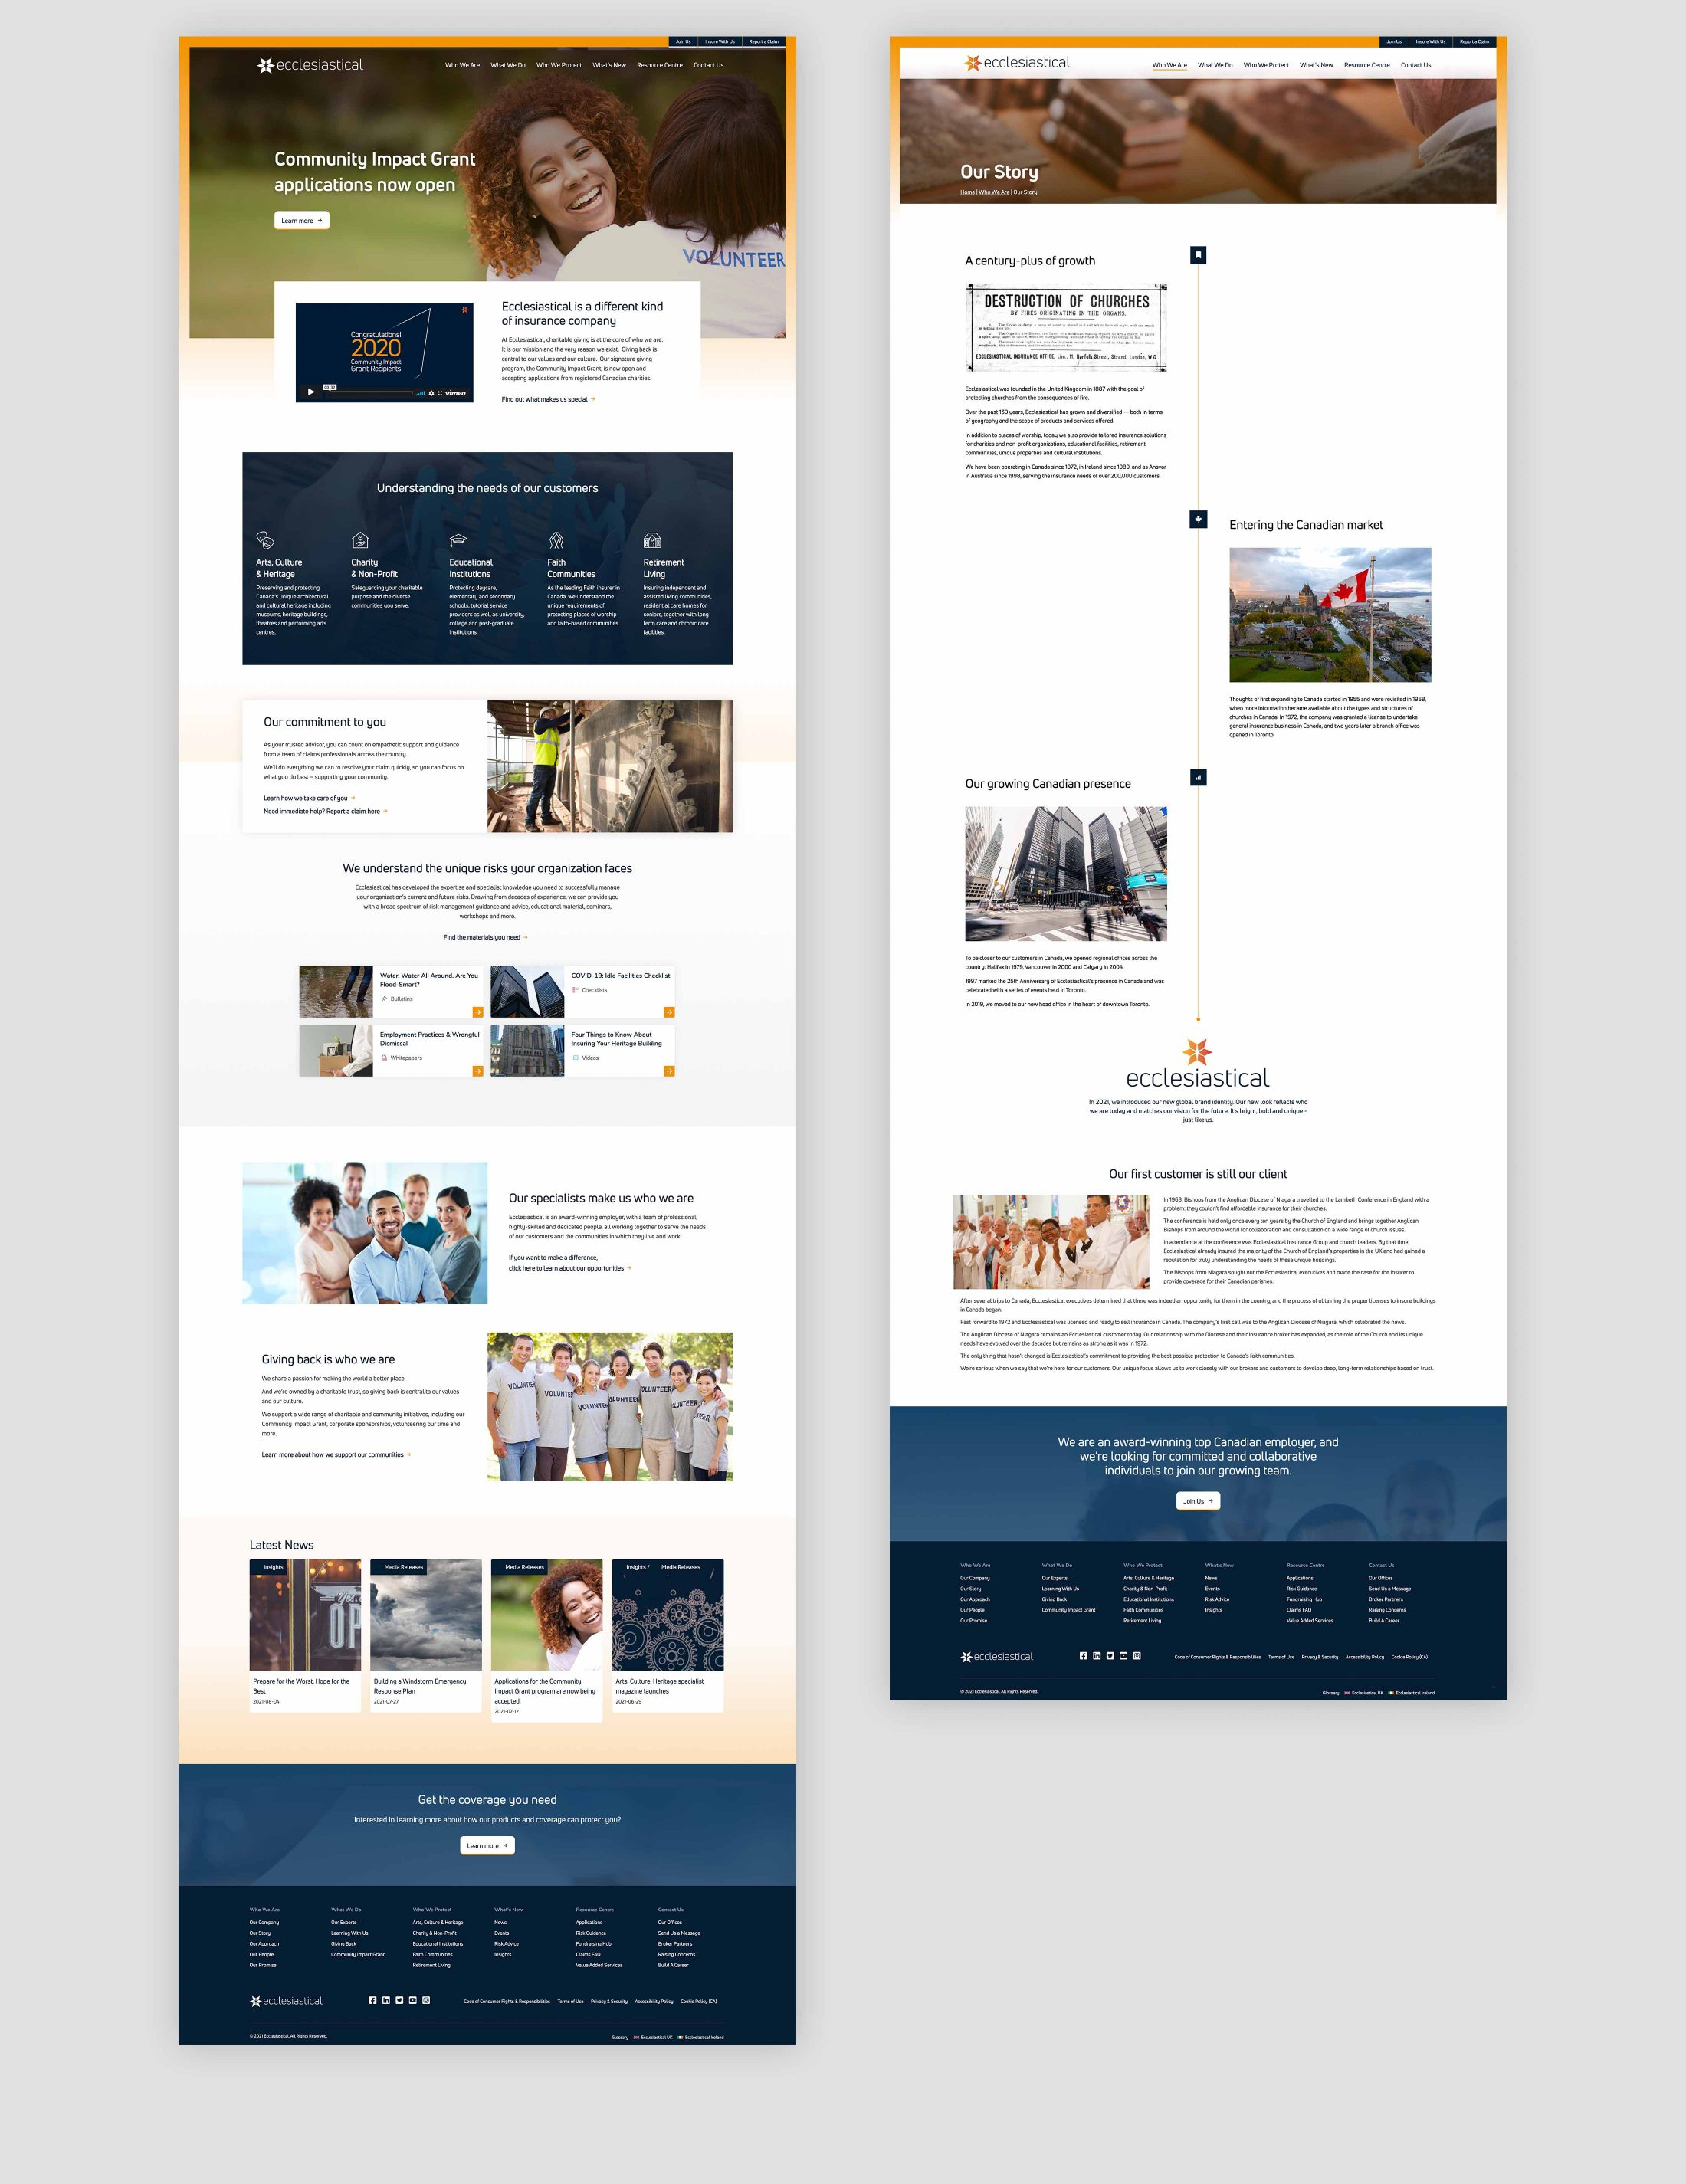 Ecclesiastical website full pages